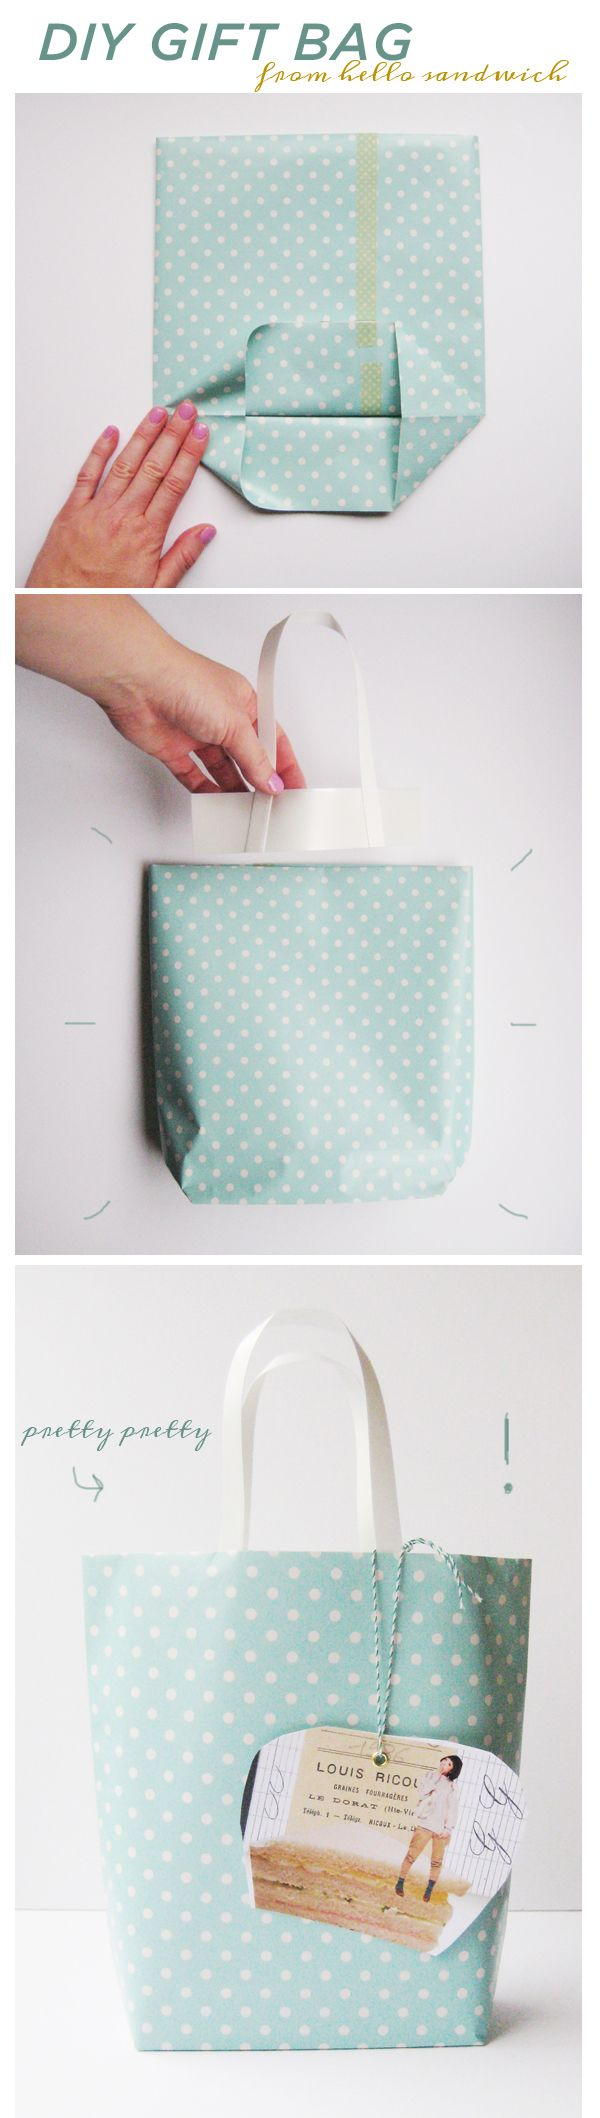 DIY gift bag tutorial.